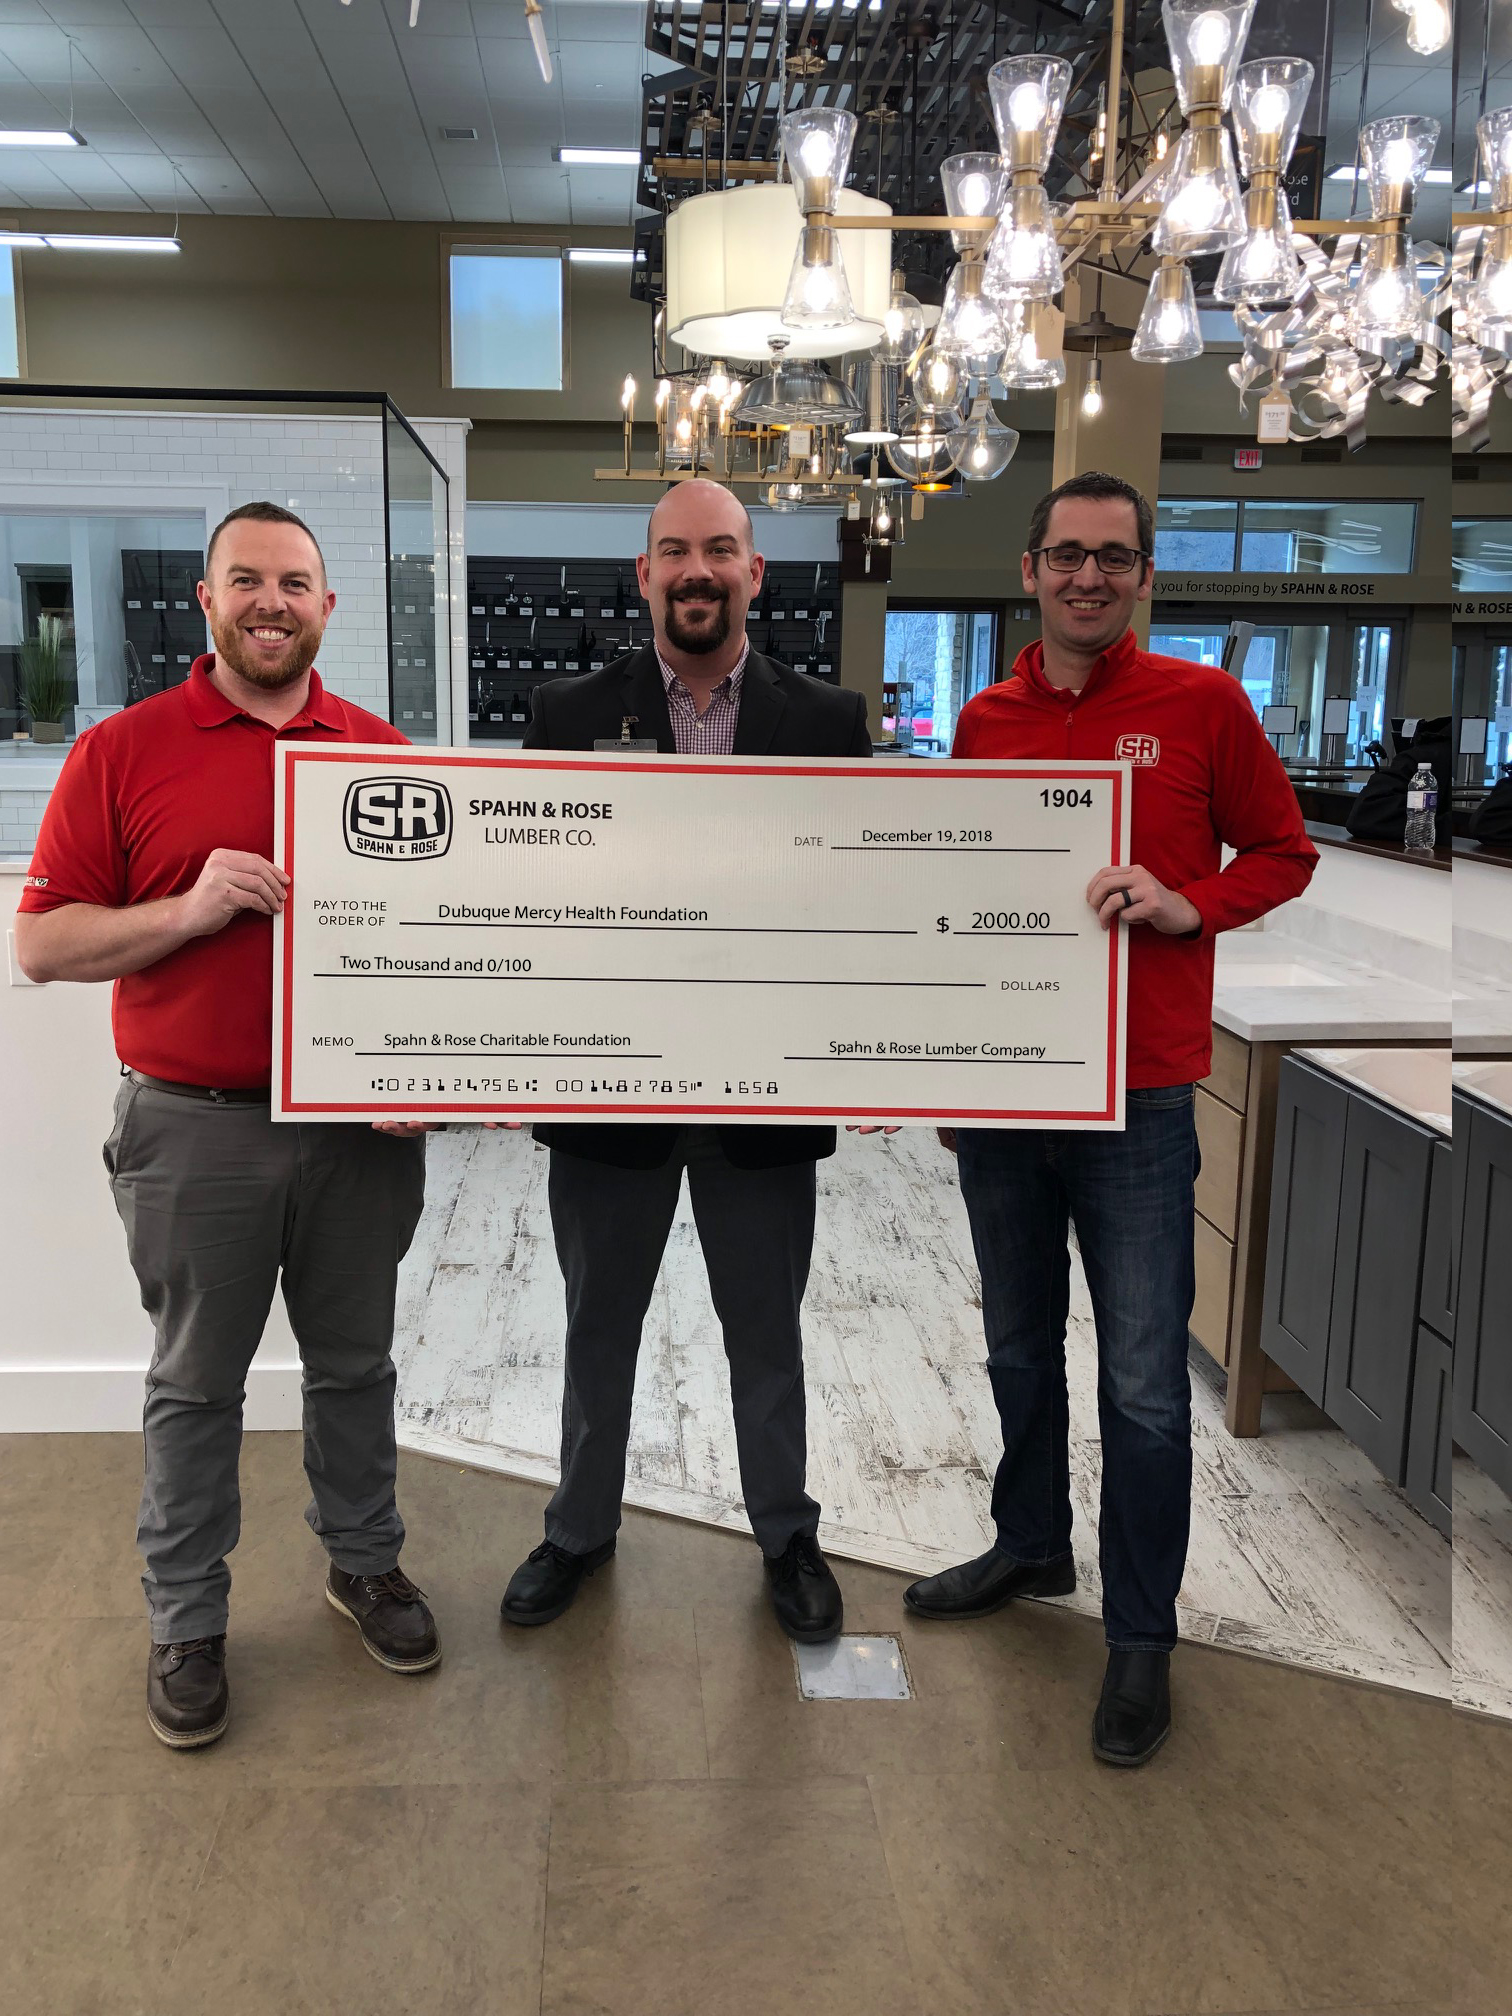 Big Red Check Day Celebrates Spahn Amp Rose S Commitment To